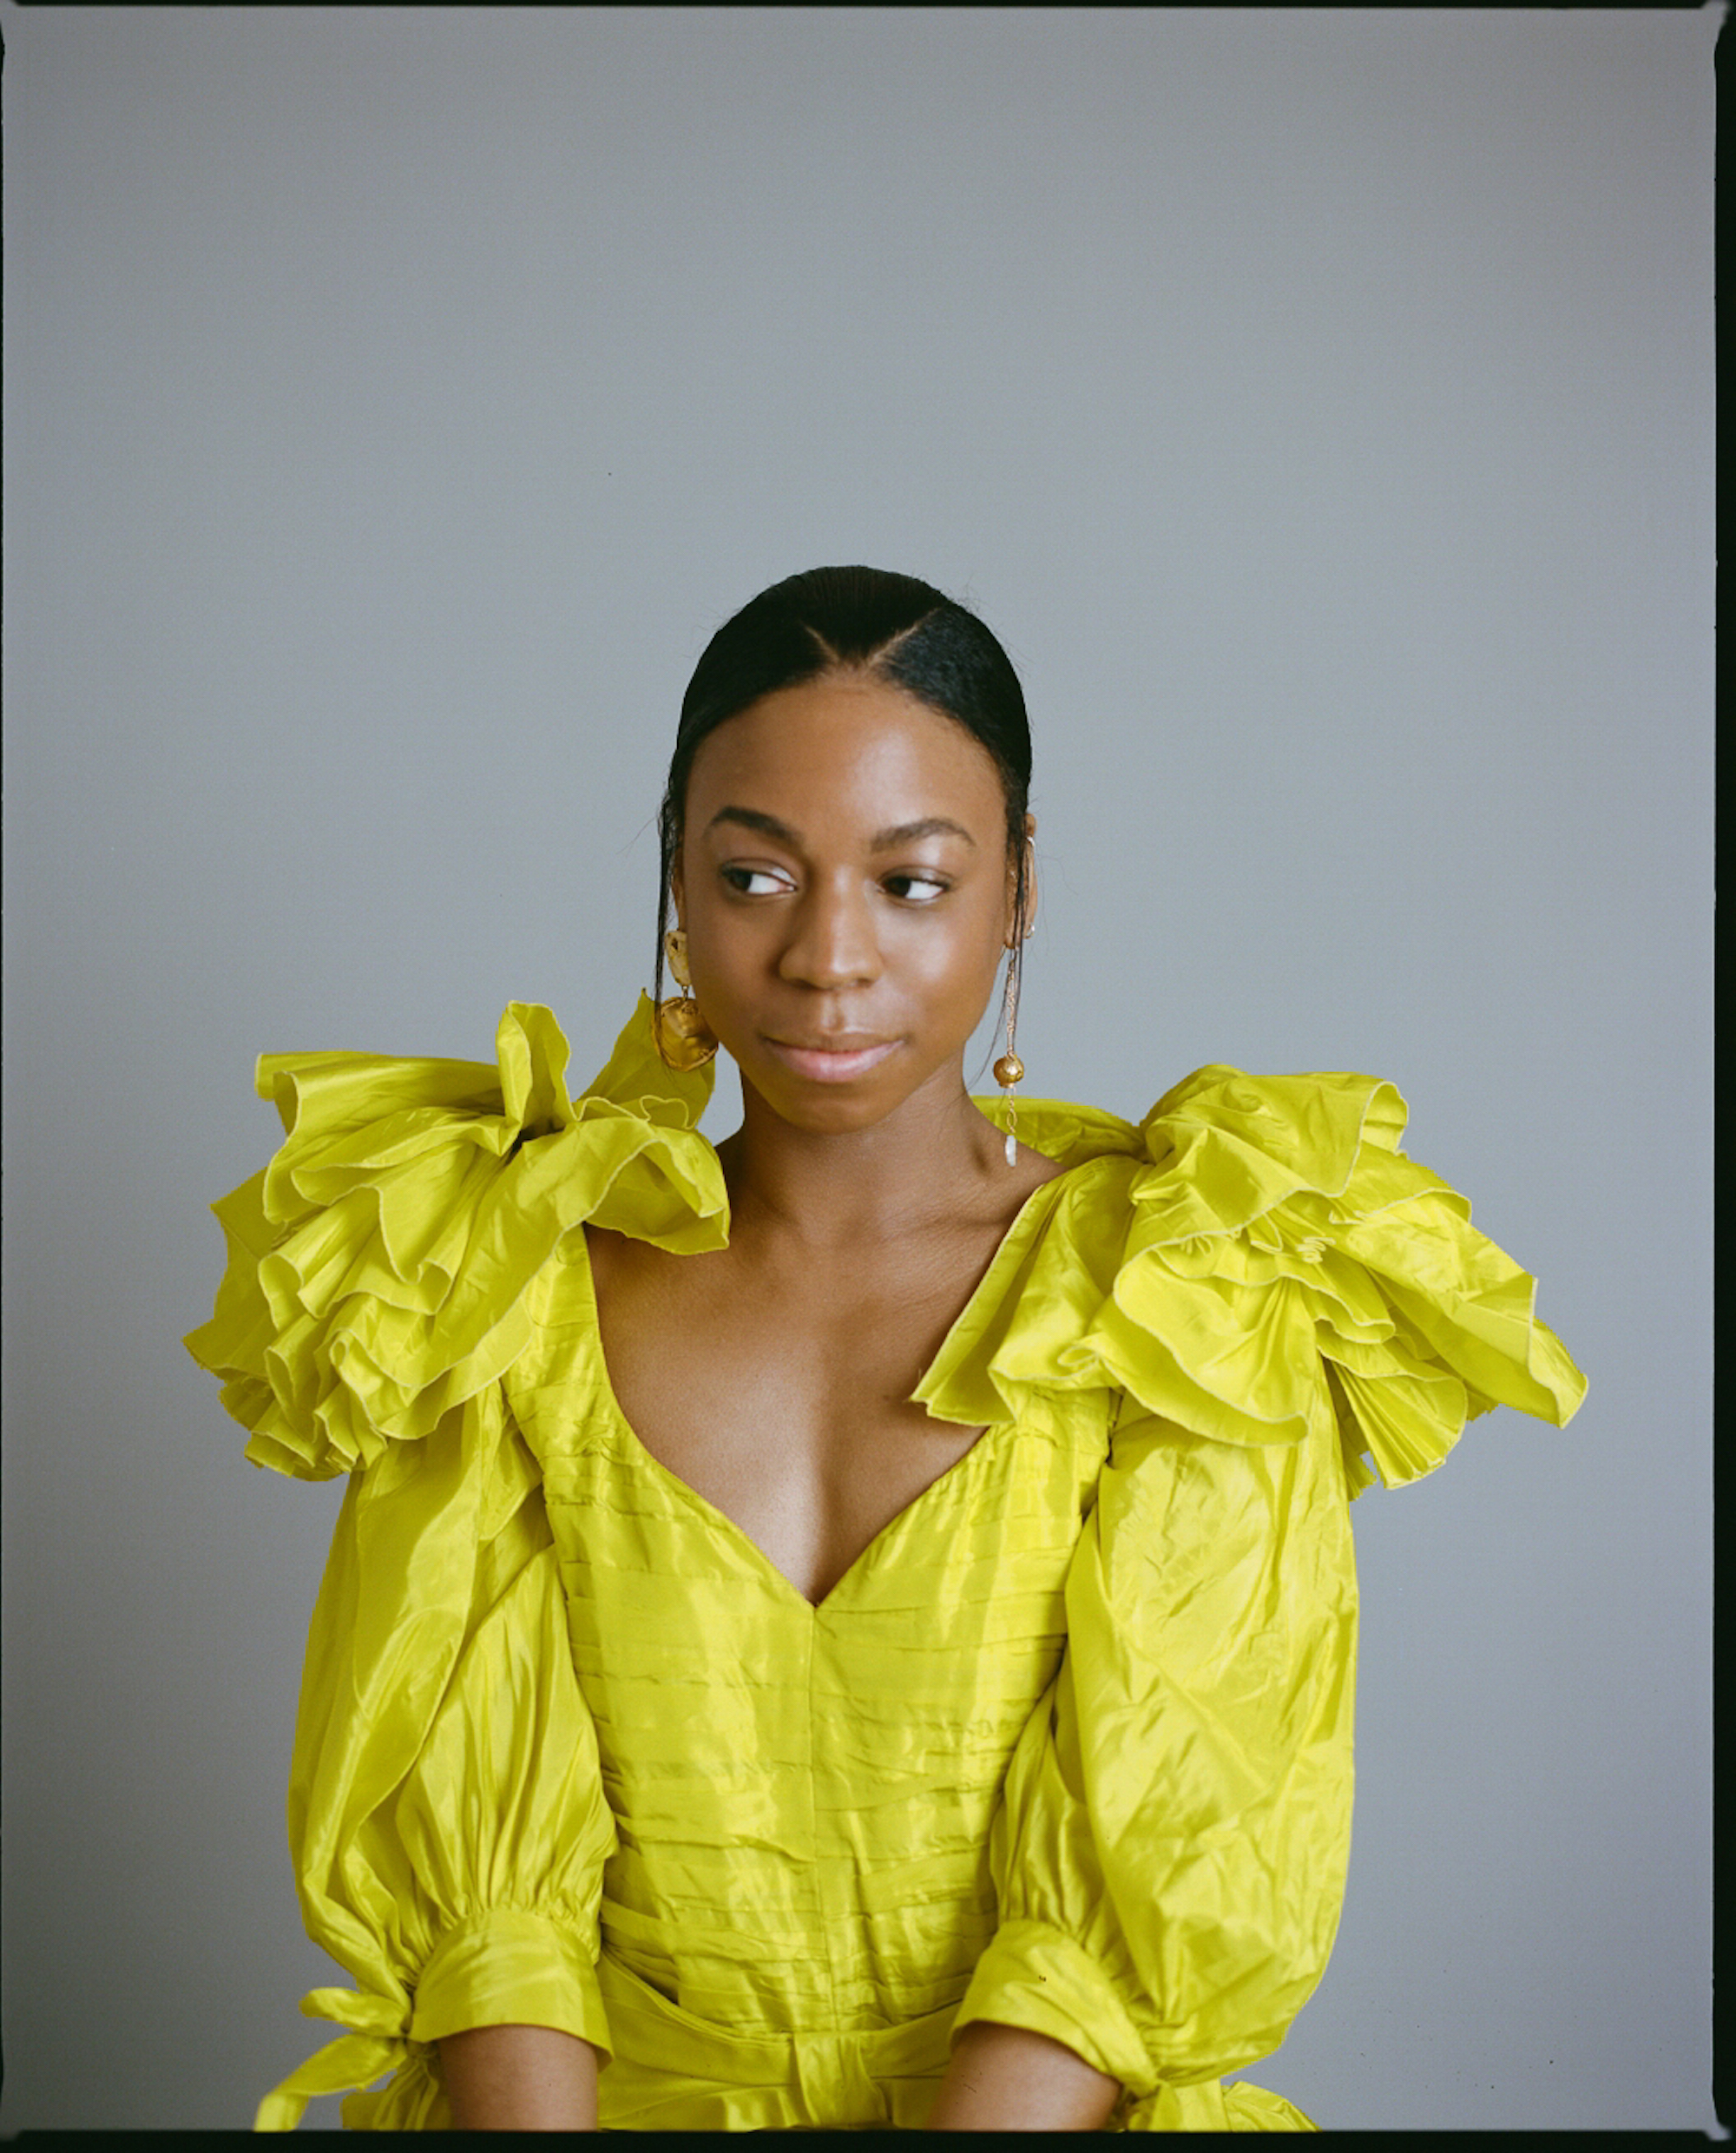 Pippa Bennett-Warner in yellow ruffle top